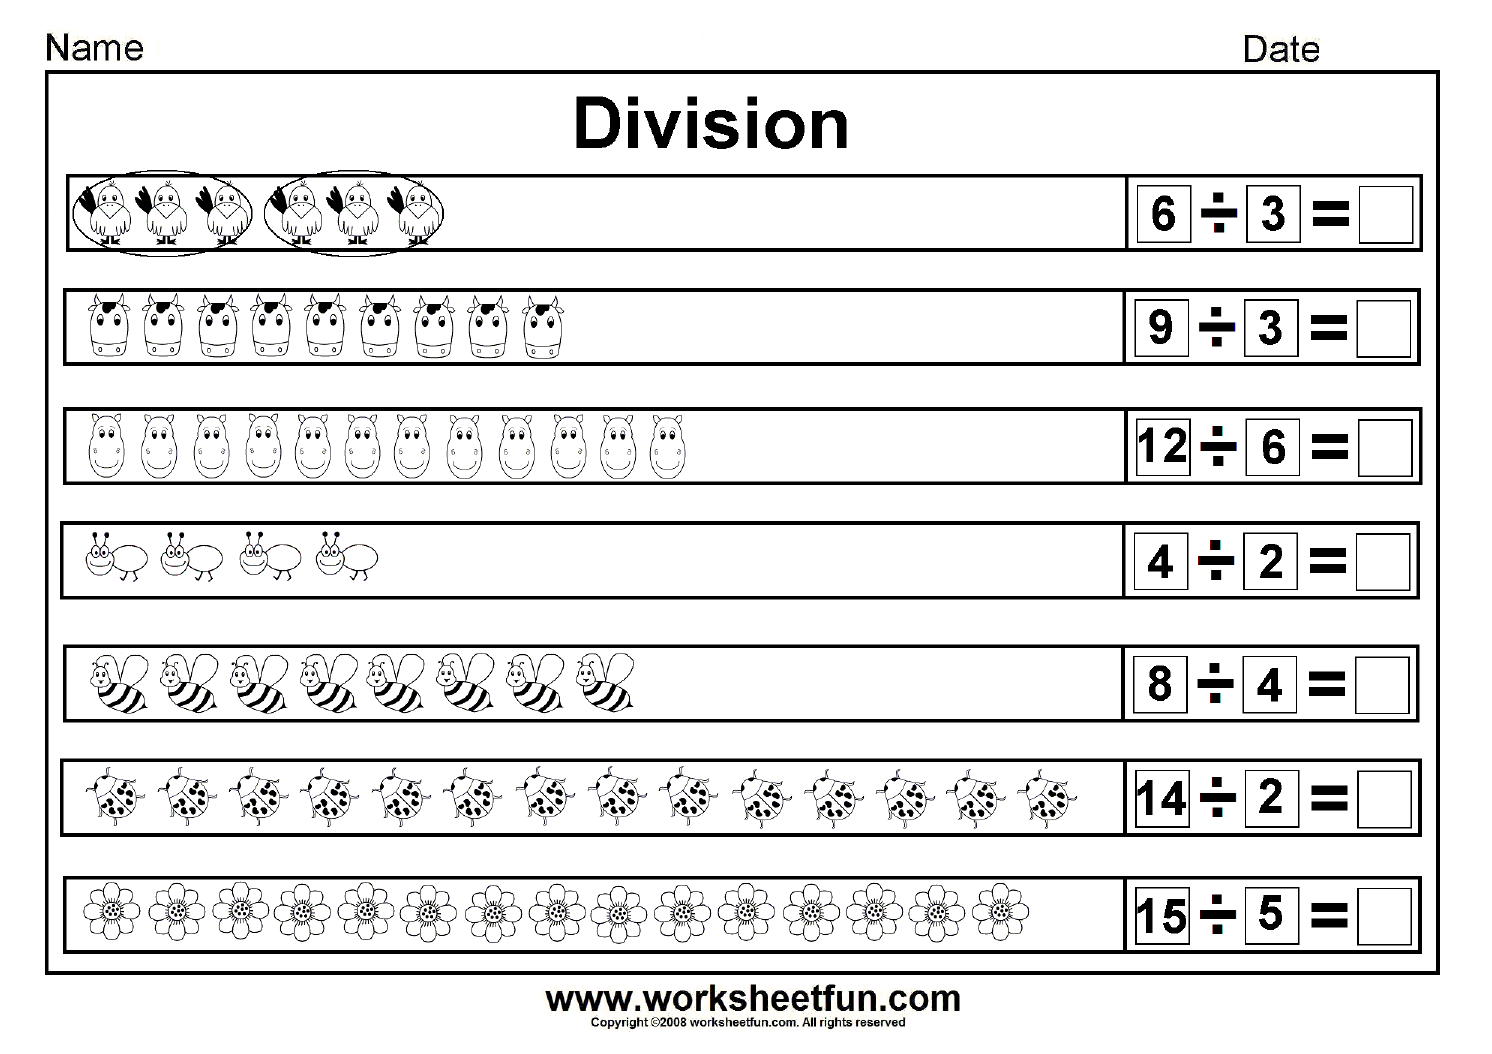 Worksheet For Beginning Division